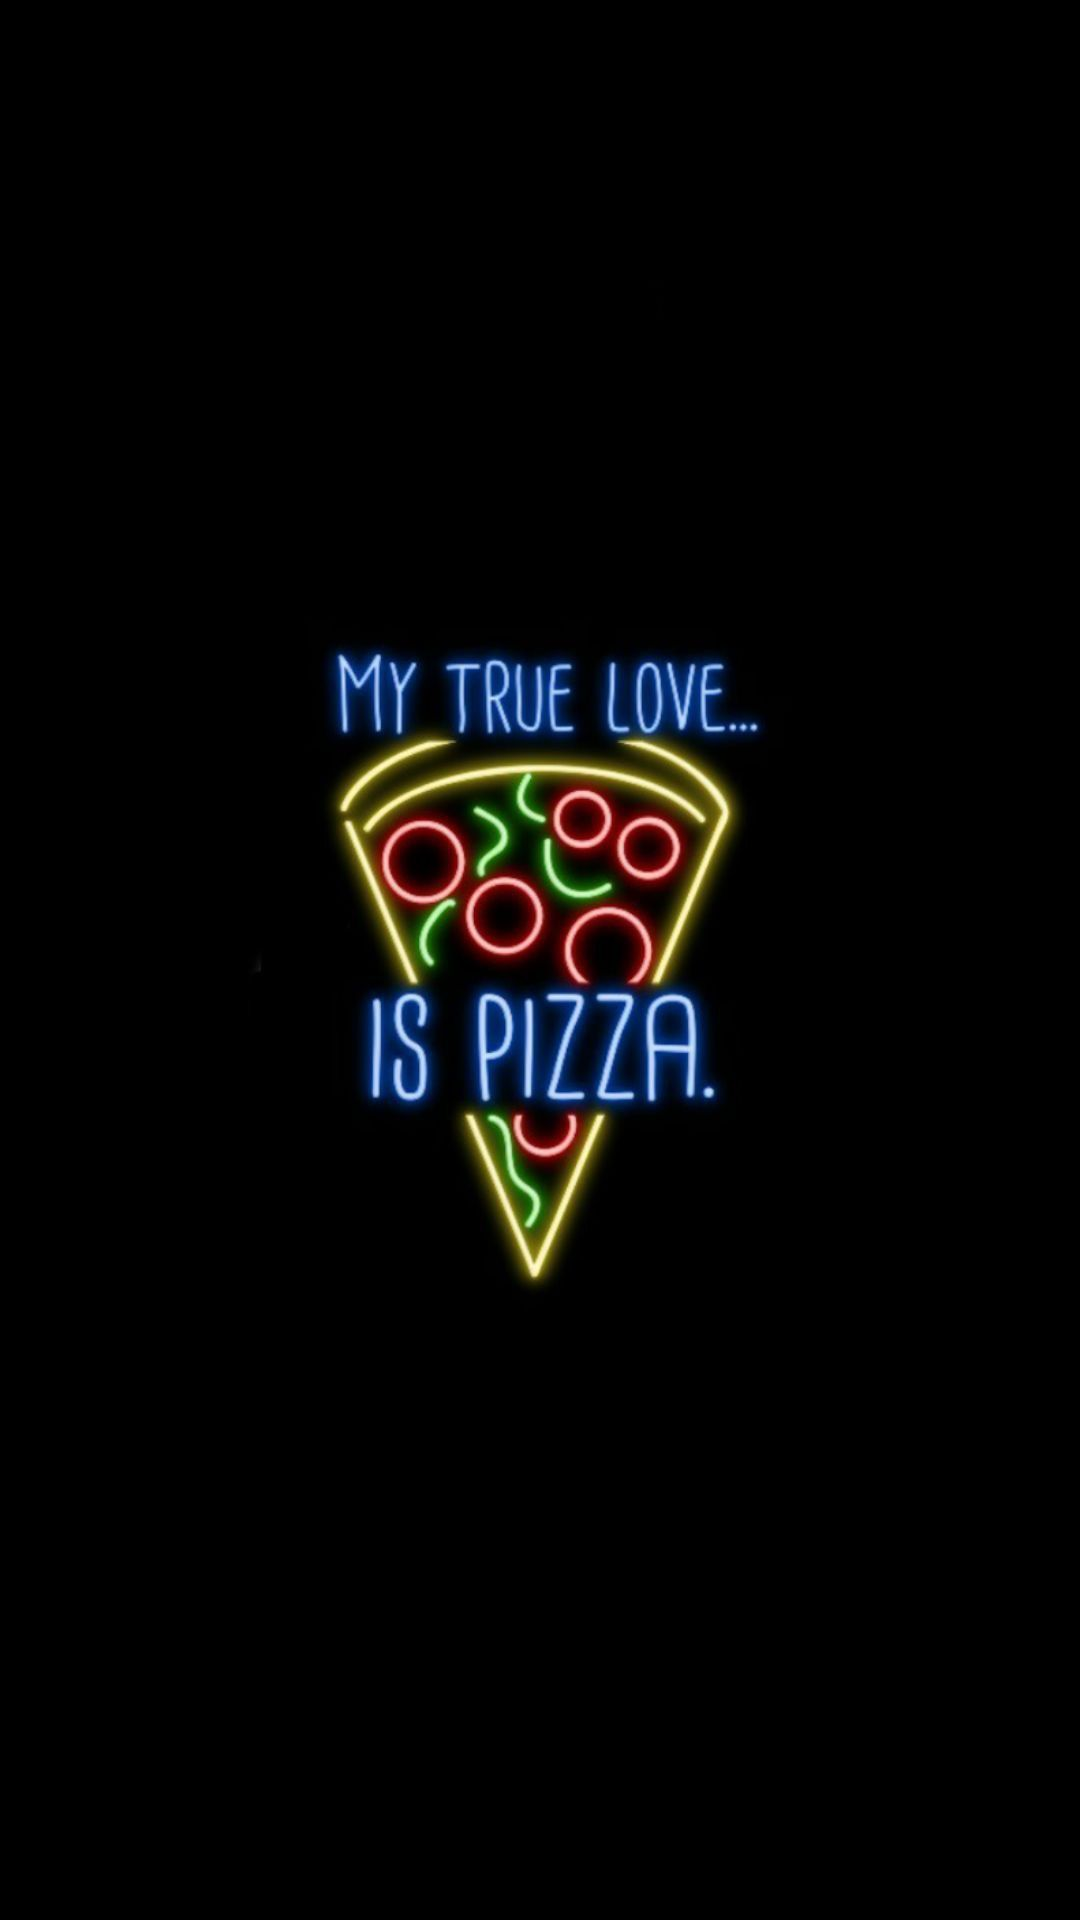 pizzzaaa neonlights neonbaby neon wallpaper, food wallpaperpizzzaaa neonlights neon wallpaper, iphone wallpaper food, best phone wallpaper,